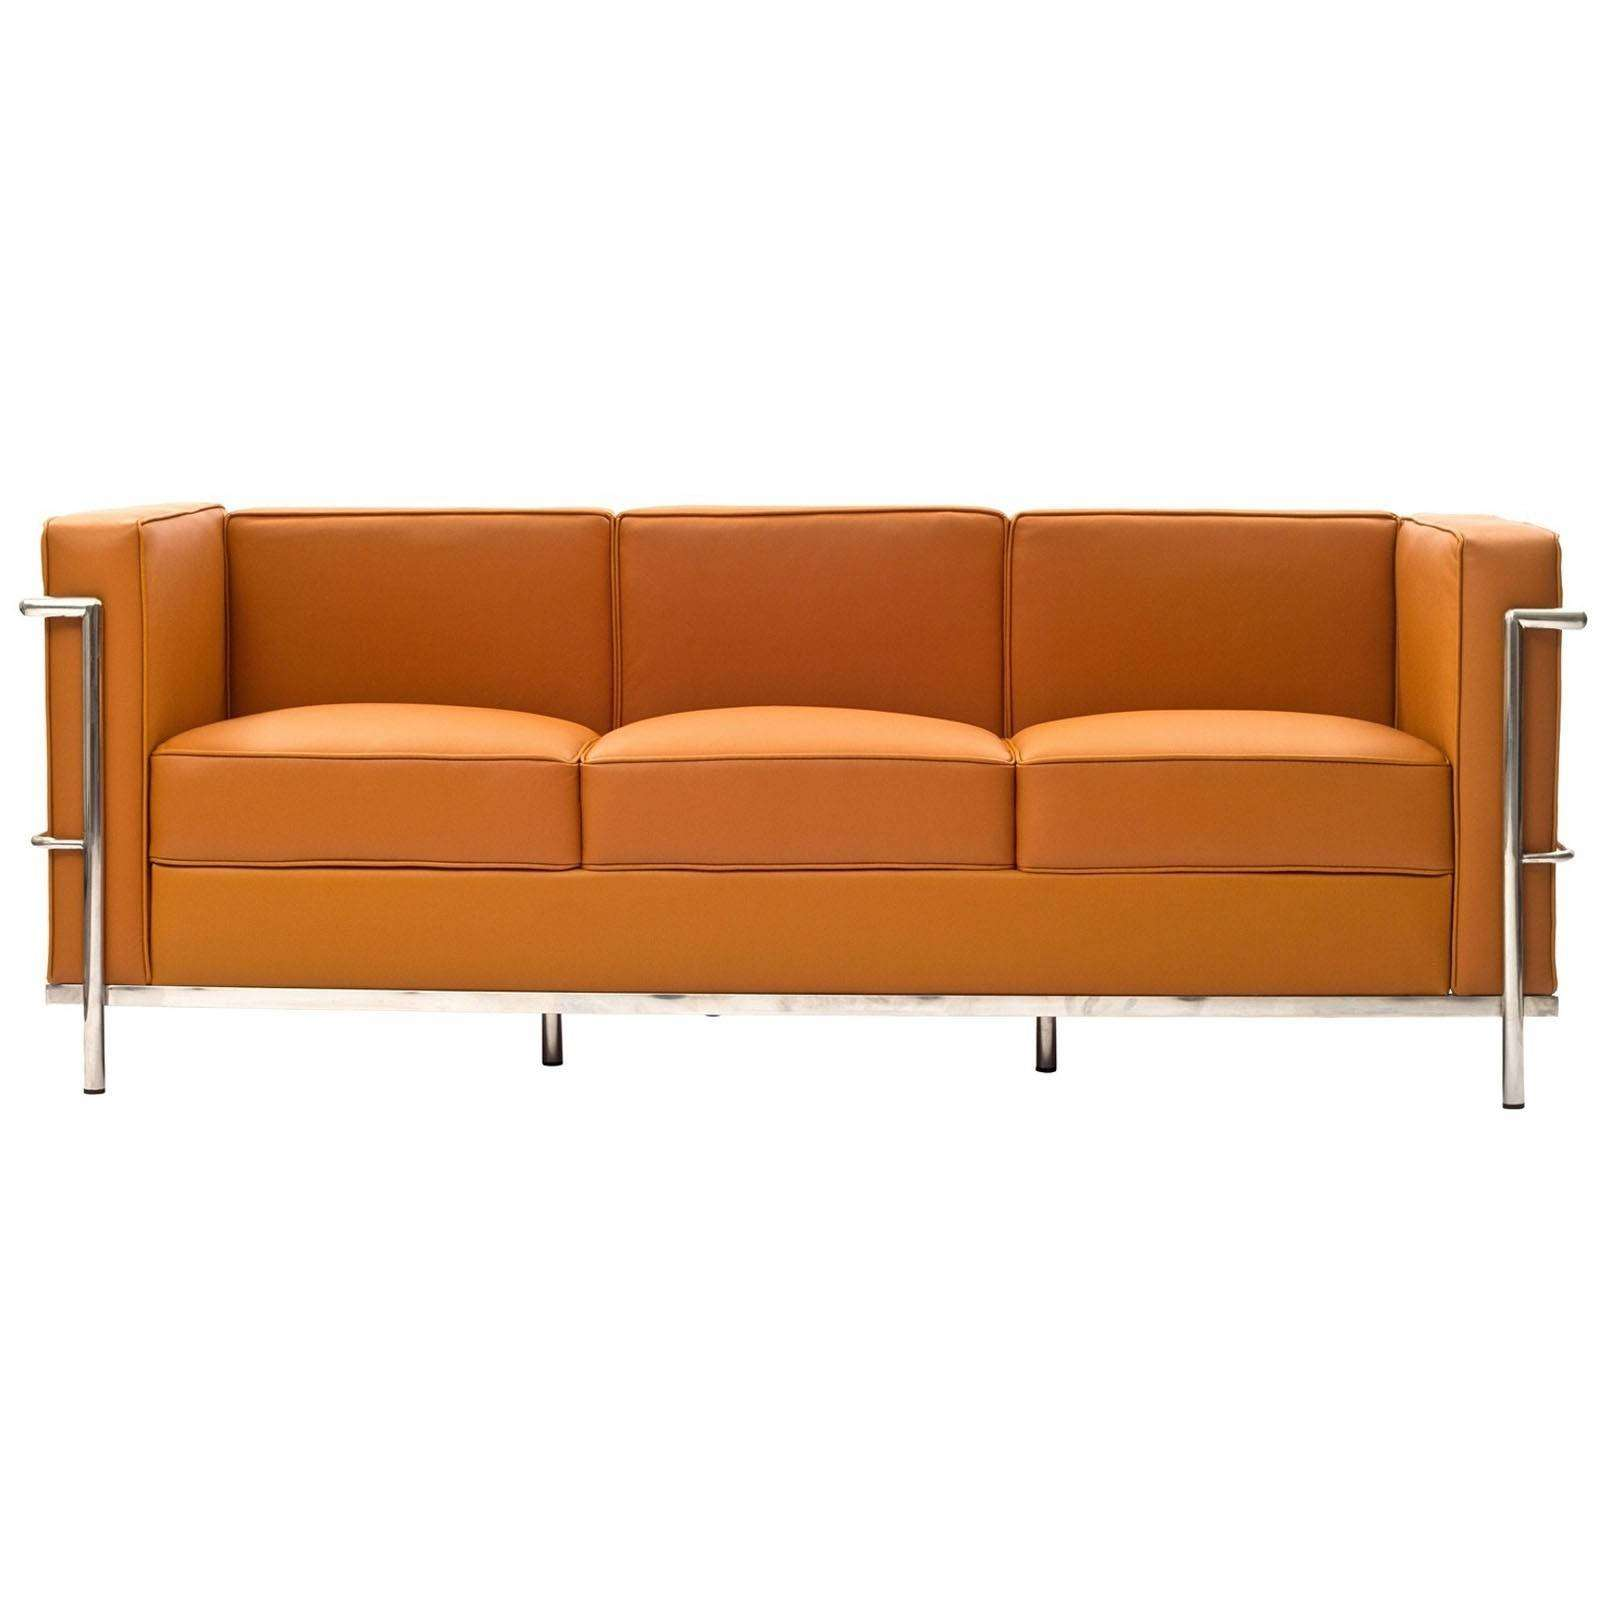 Sofa Le Corbusier Le Corbusier Style Lc2 Sofa Leather